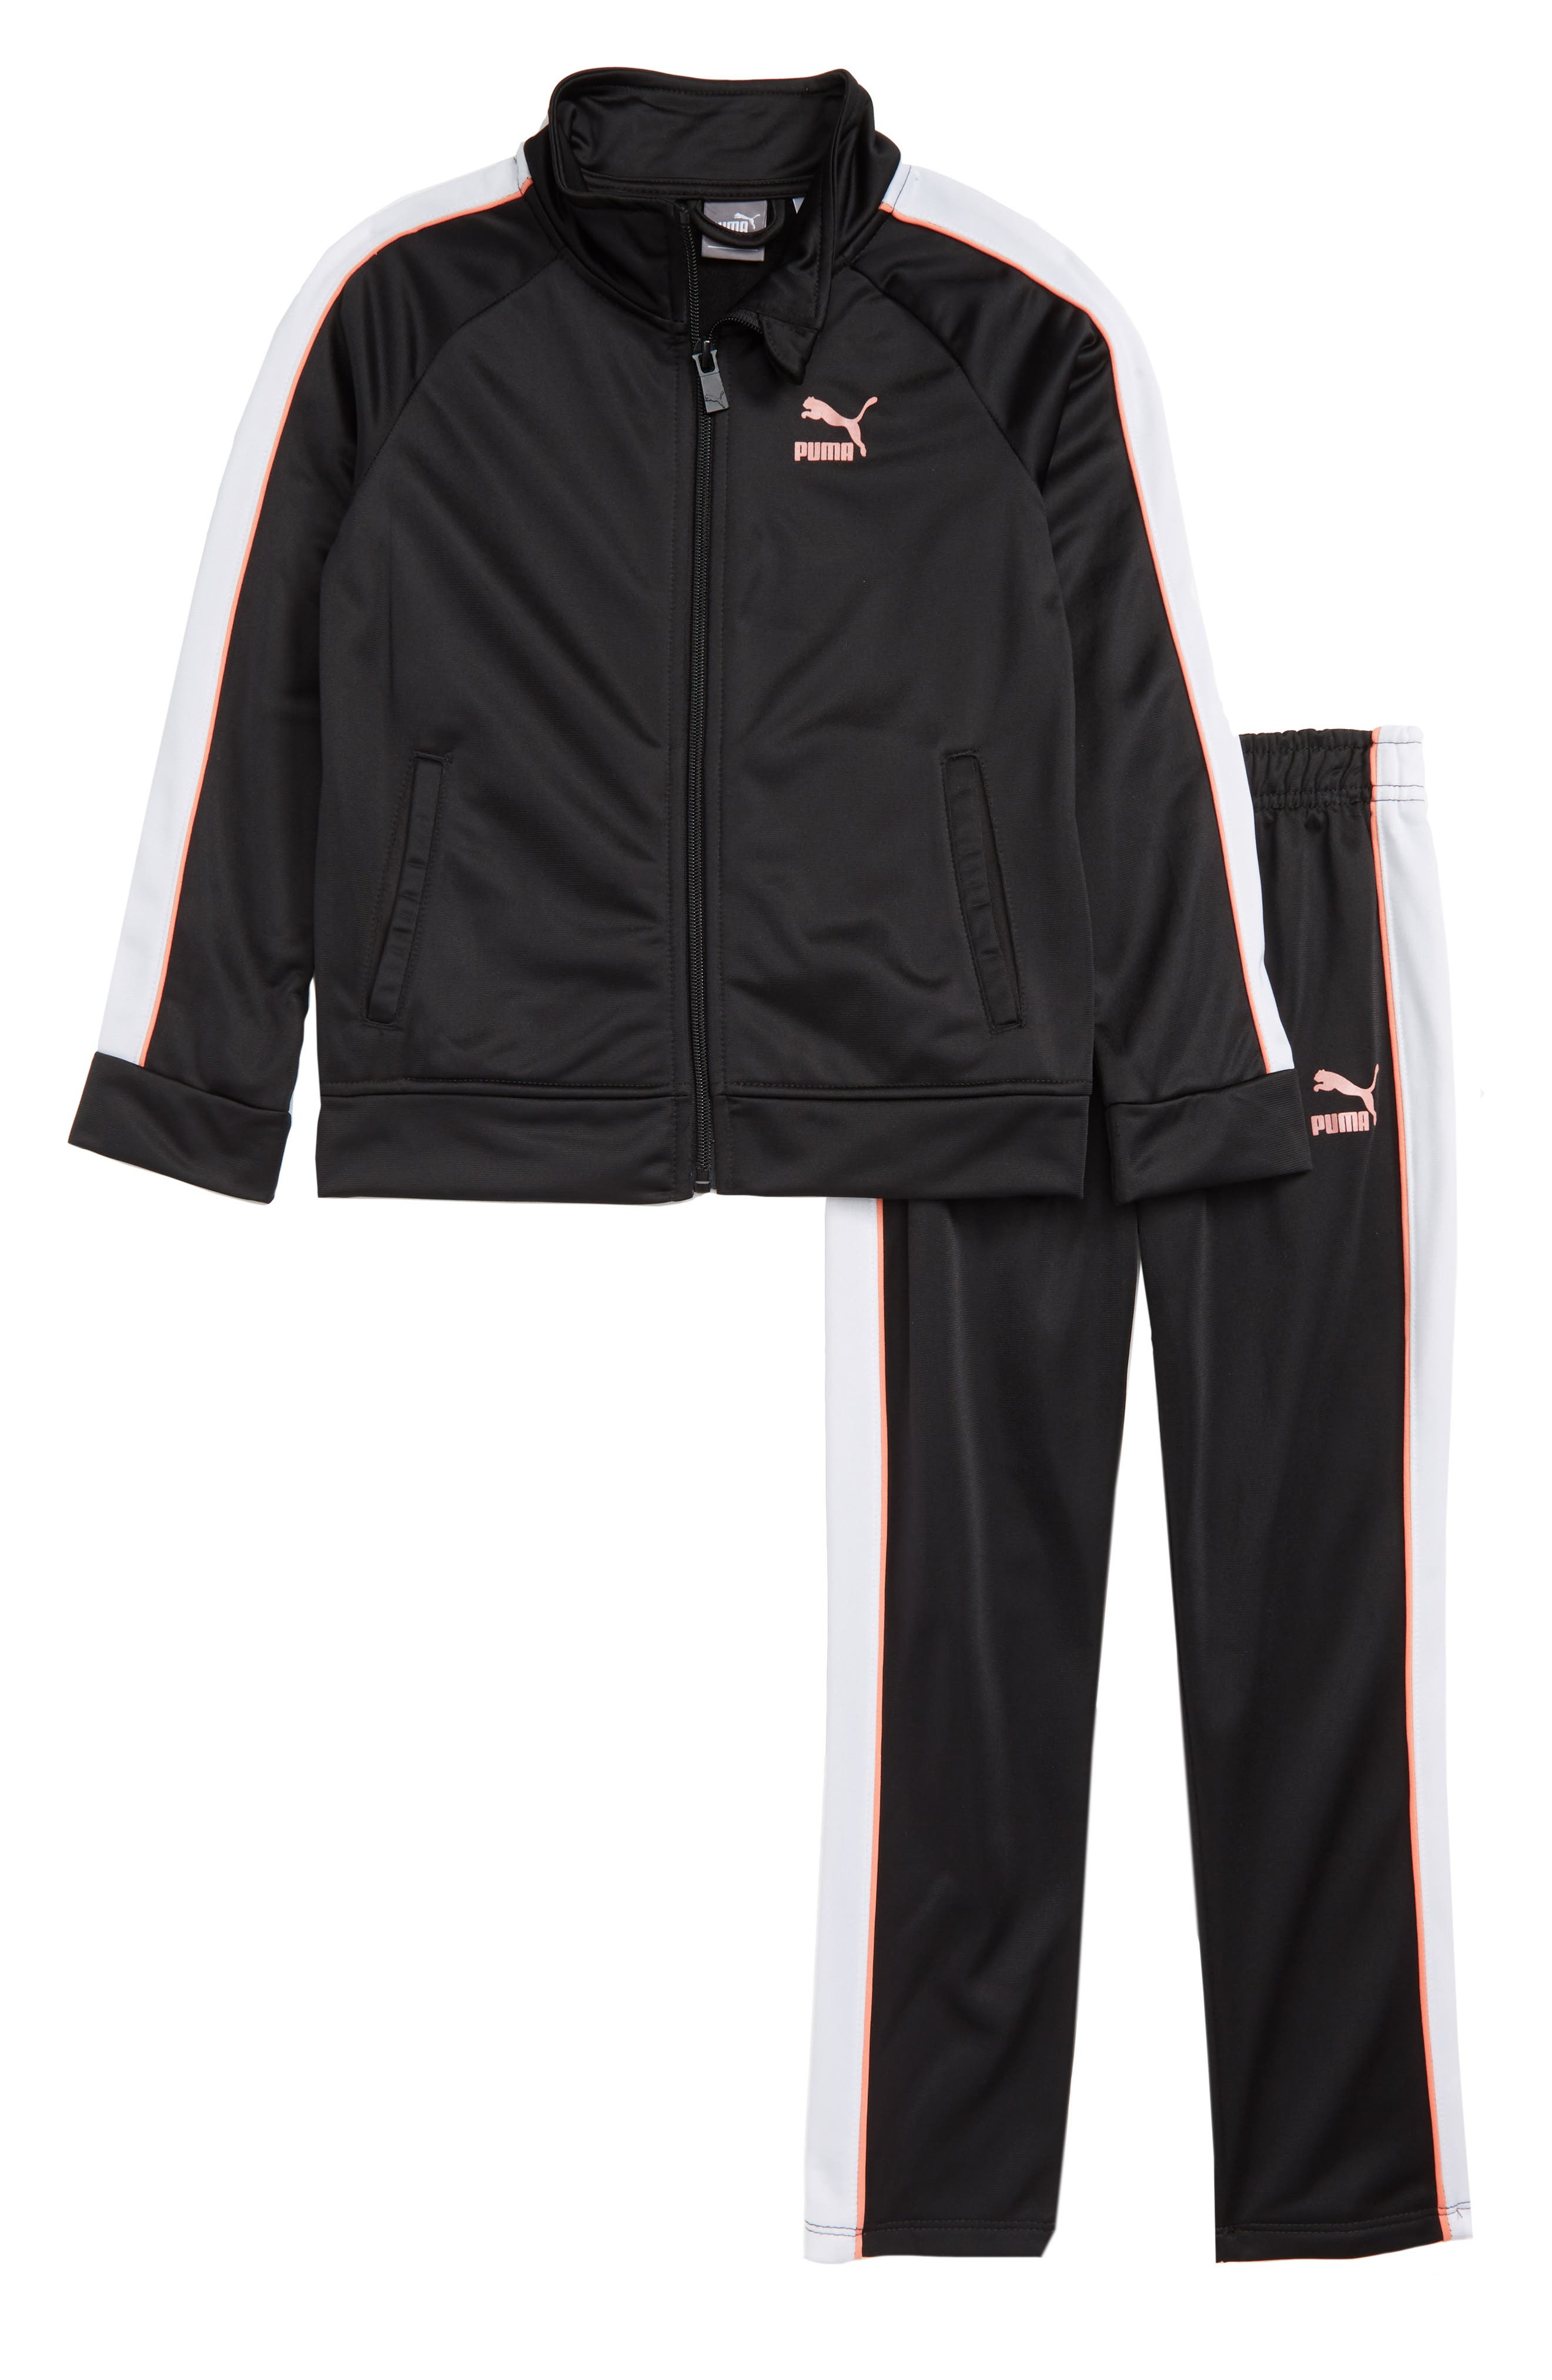 Track Jacket and Pant Set,                         Main,                         color, 001